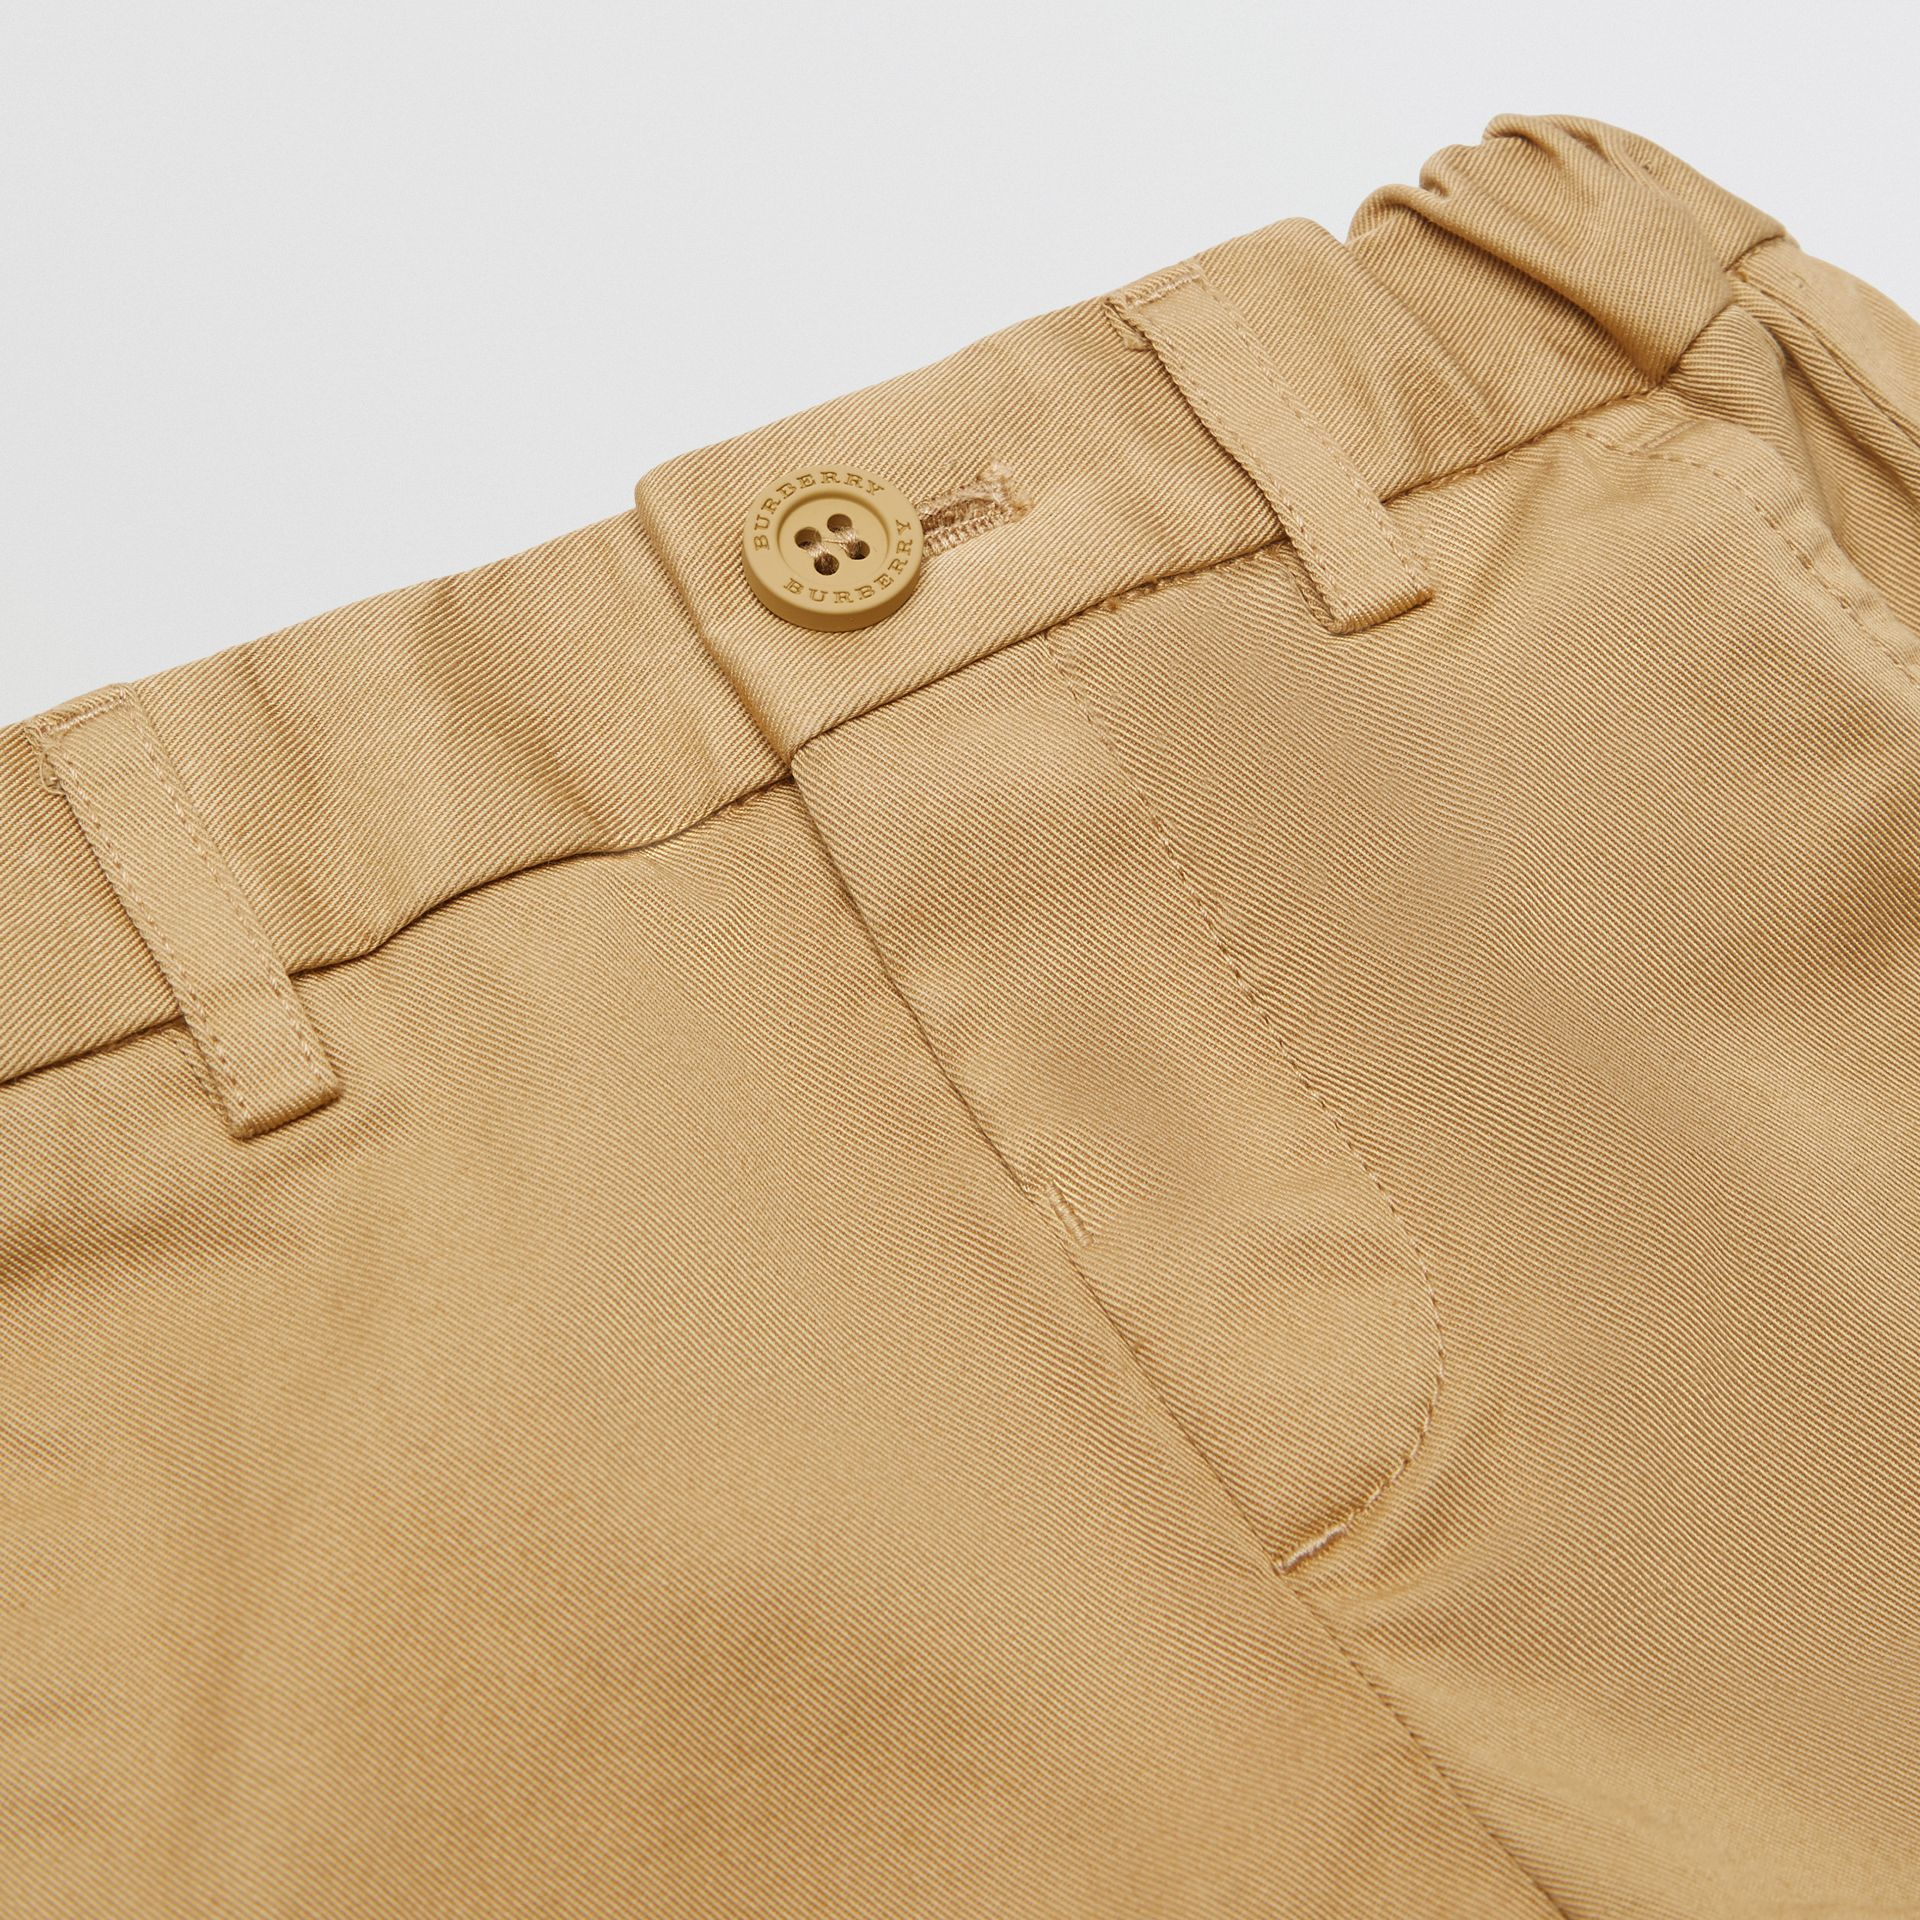 Pantalon chino en coton (Taupe) - Enfant | Burberry Canada - photo de la galerie 1